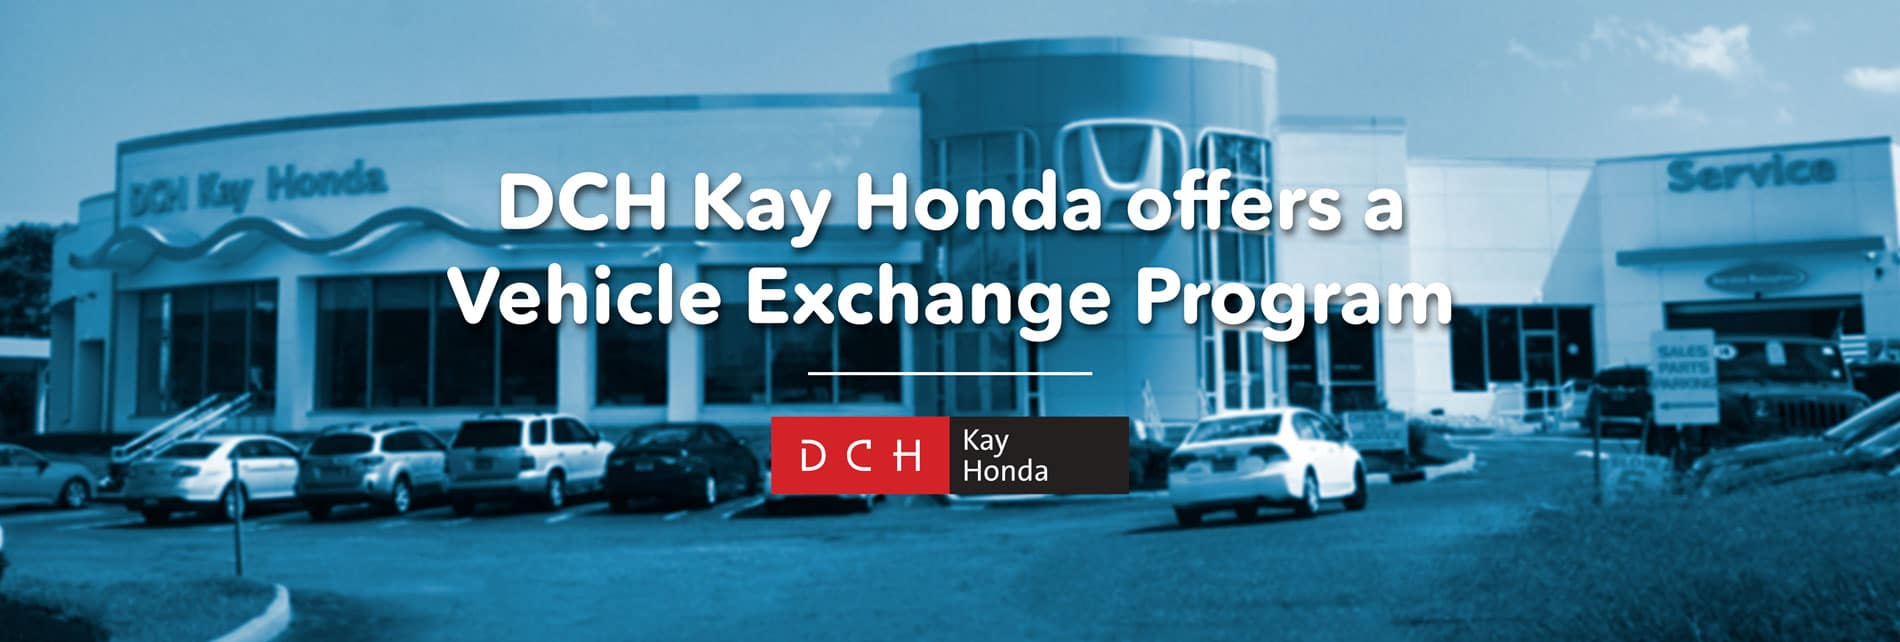 If you have a Honda and want to easily get into a NEW Honda vehicle, we will give you top-dollar for your exchange!